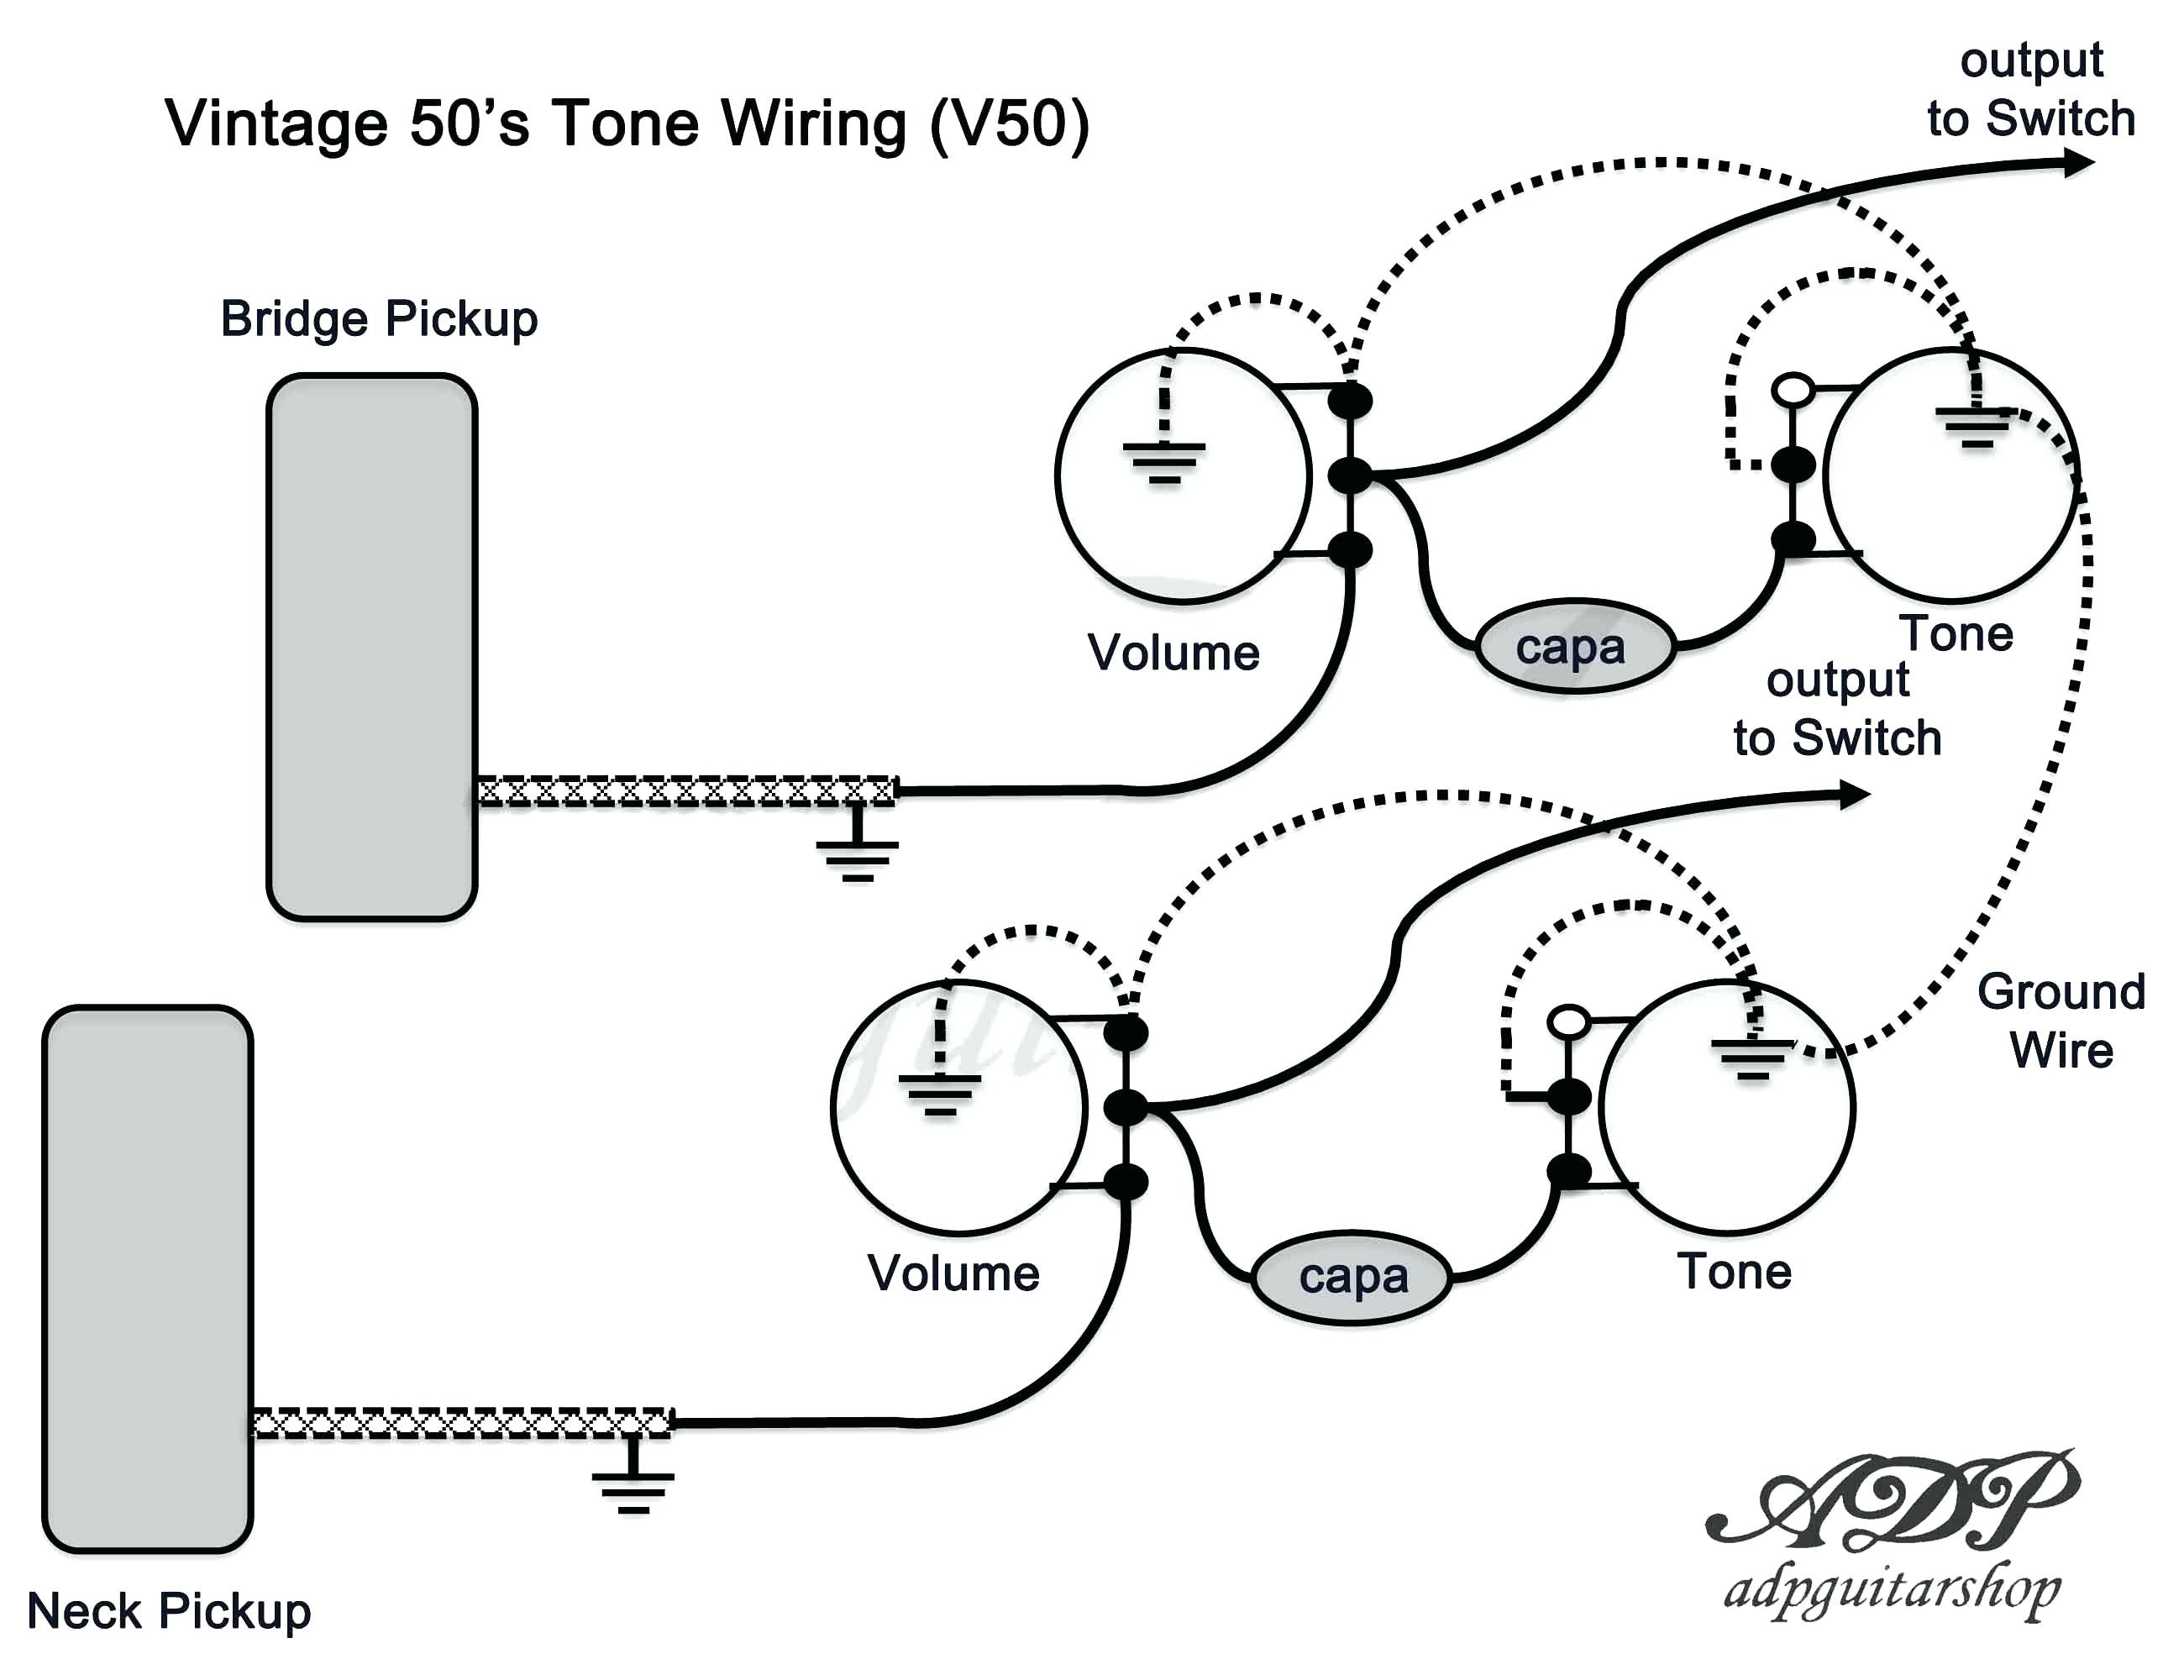 wiring diagram for vintage 5039s phase wiring diagram user fender wiring gibson vintage diagram circuit wiring diagrams favorites gibson les paul wiring mods wiring diagram